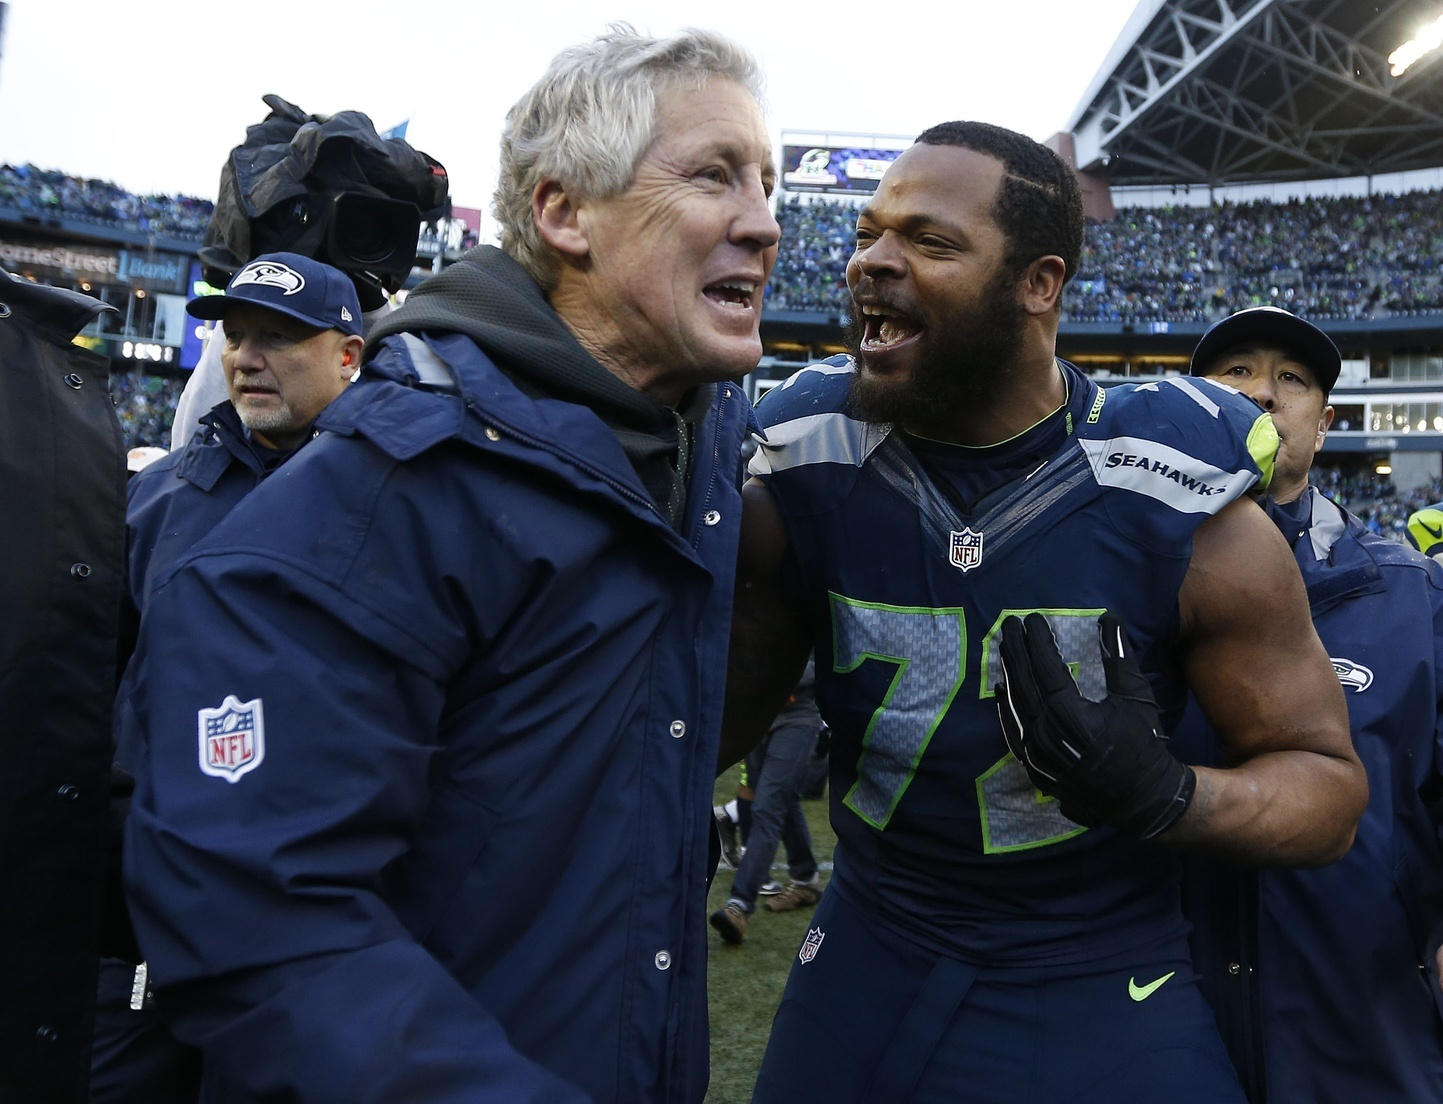 Hot The Seattle Seahawks Want to Trademark the Number 12, Let's Laugh at  supplier